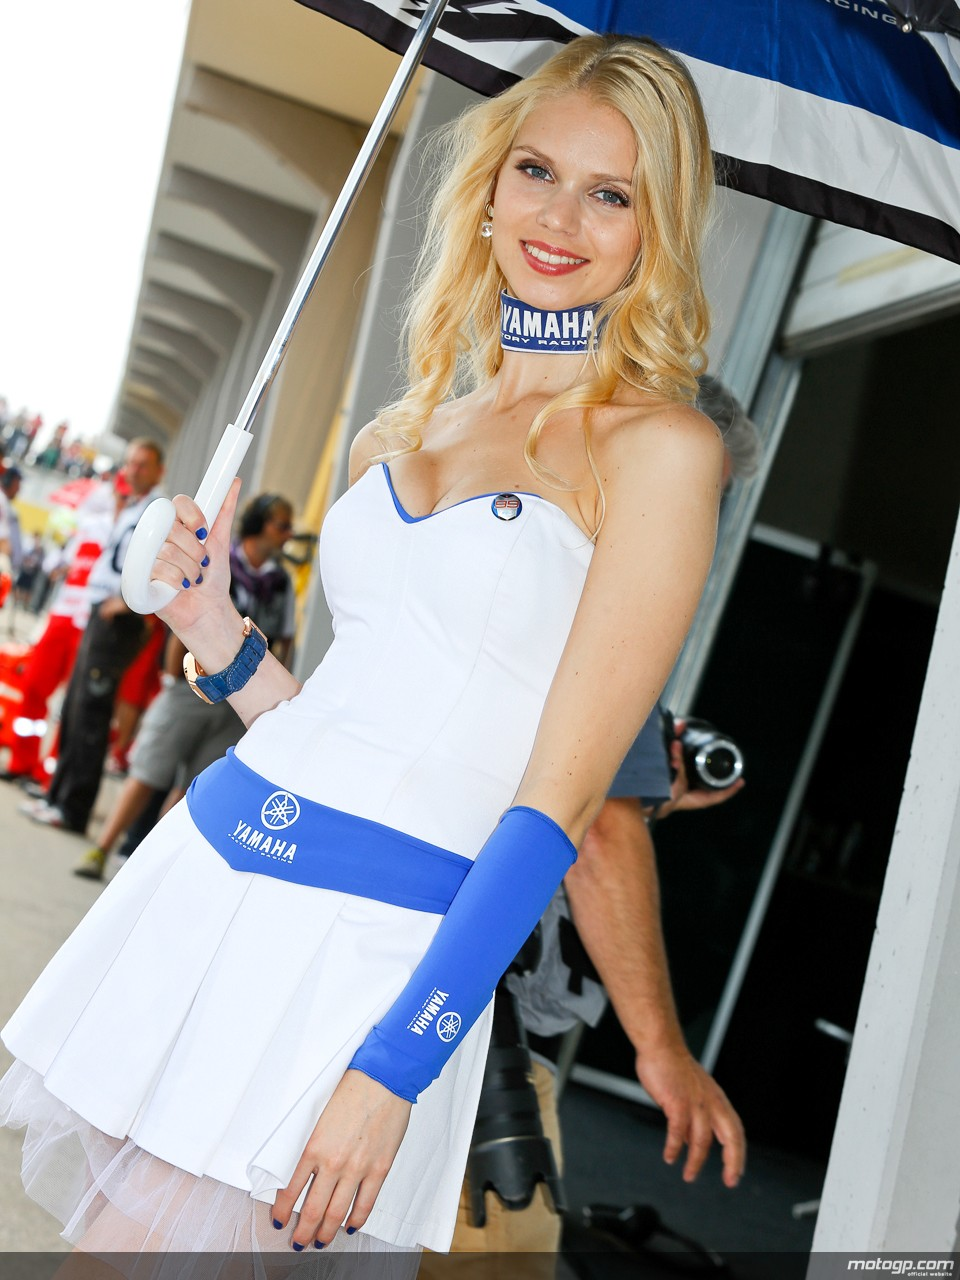 2013 Motogp The Beautiful Paddock Girls At Sachsenring